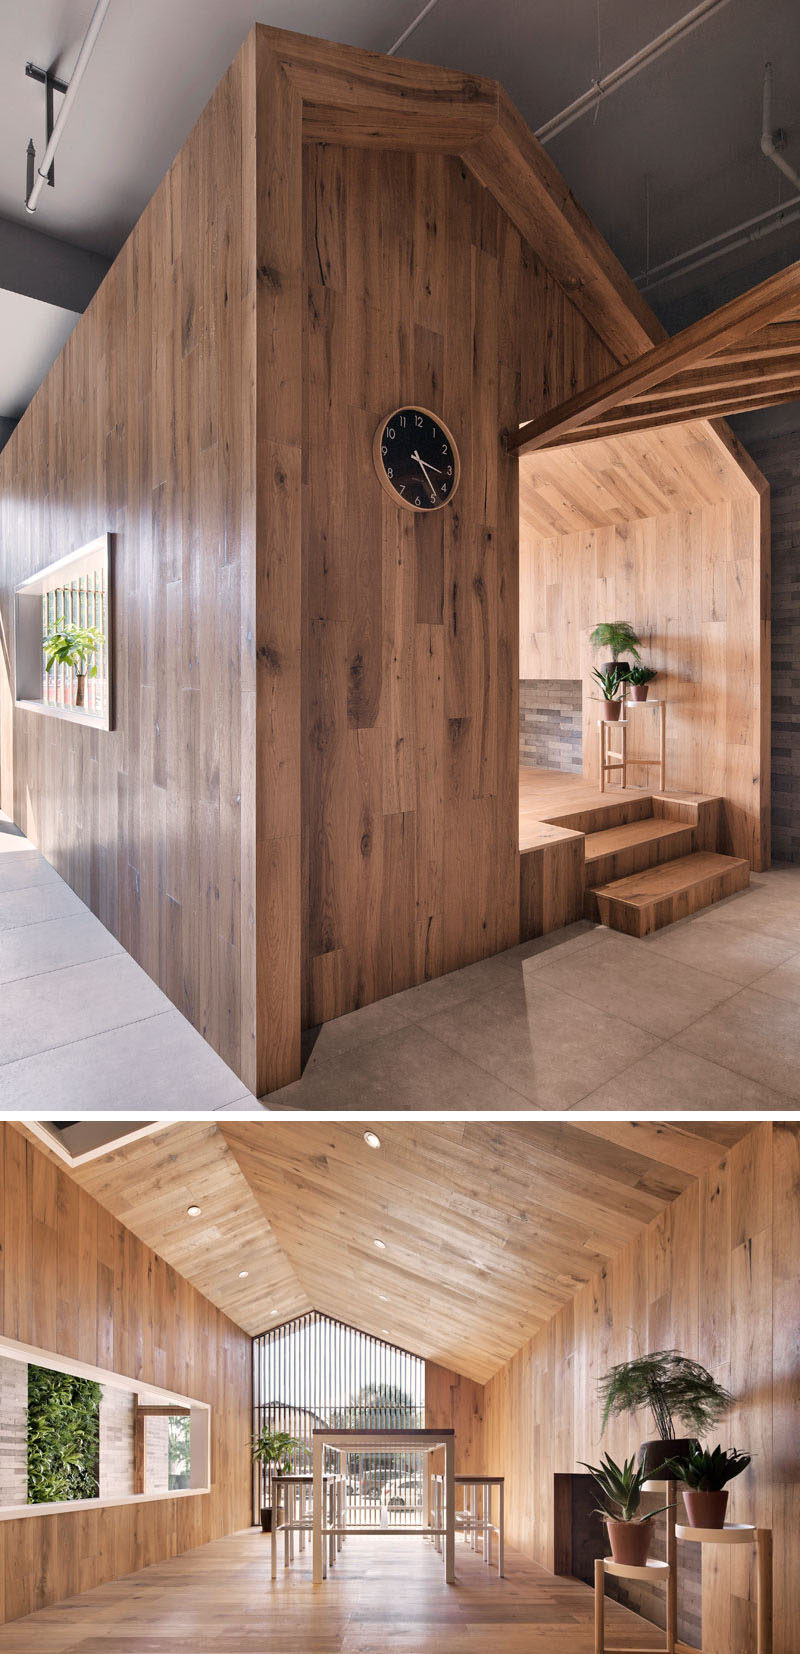 Gray Bricks And Wood Work Together To Create A